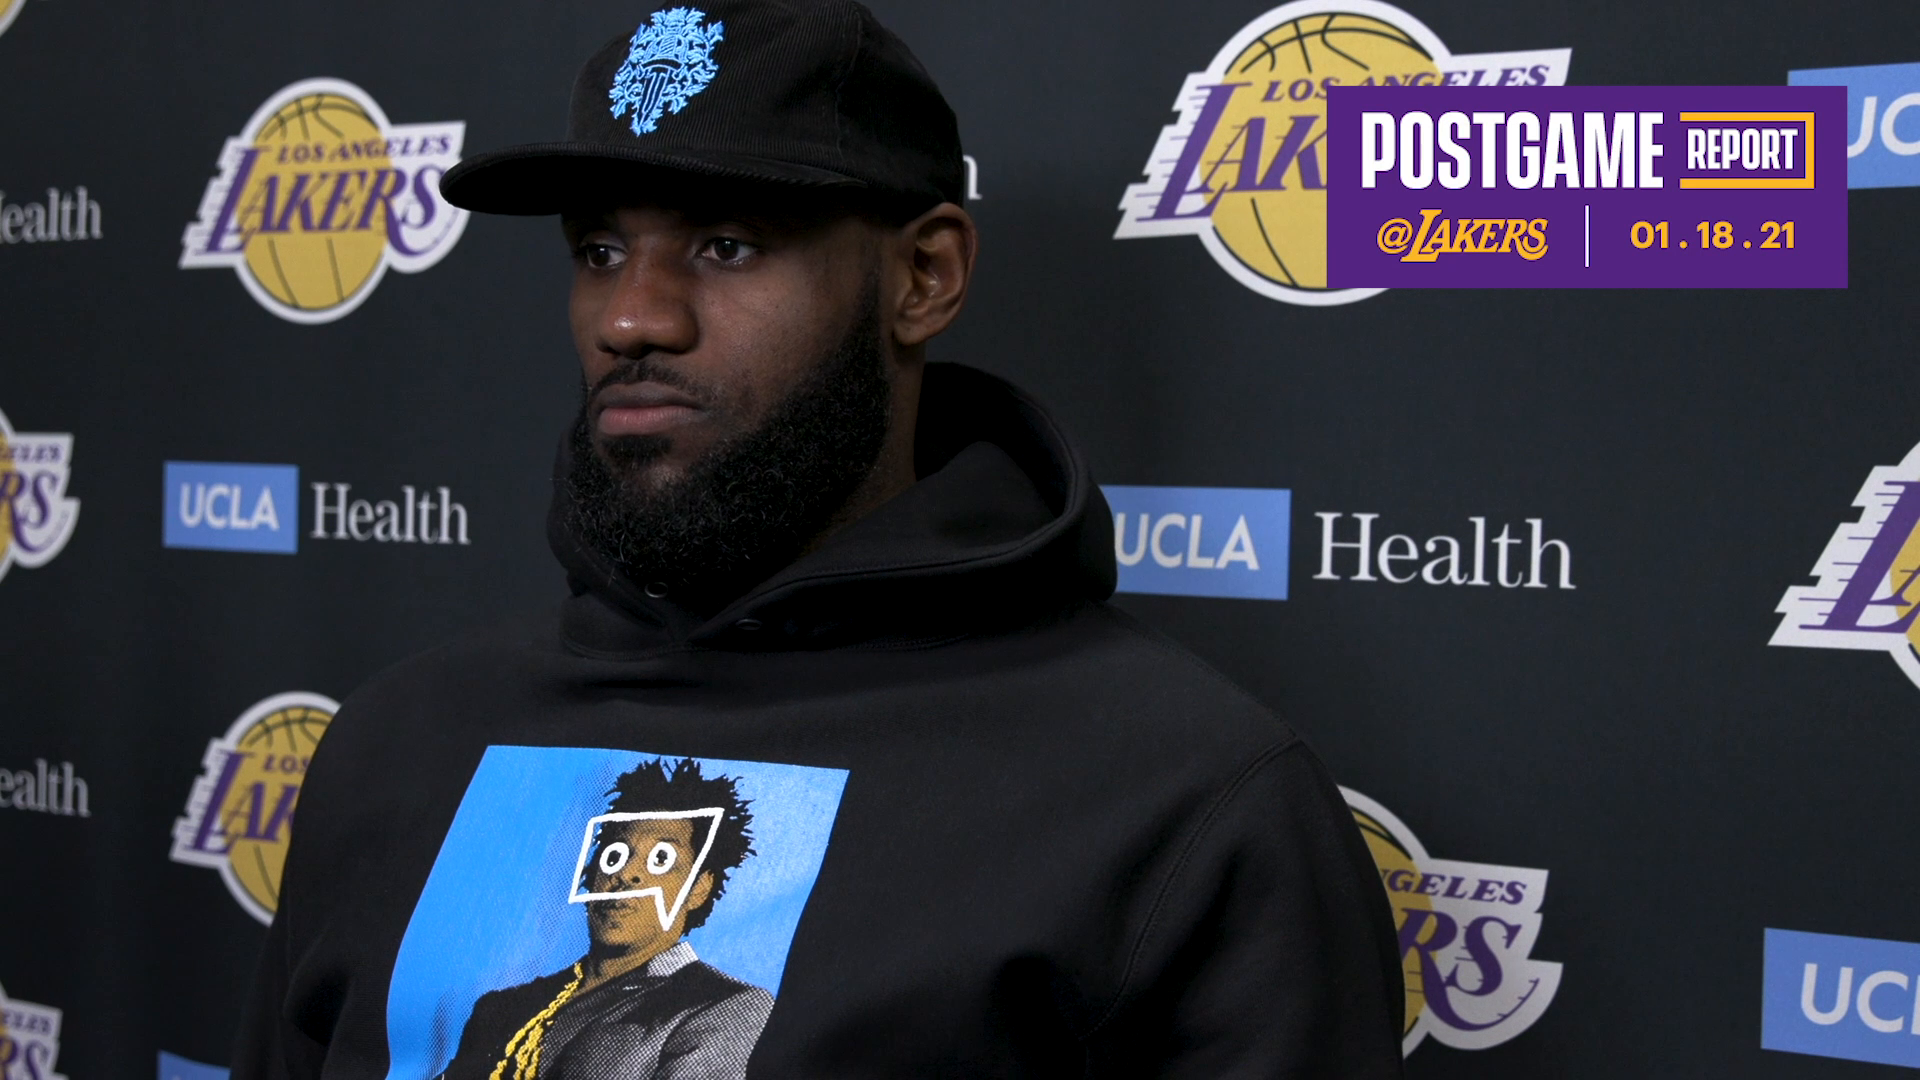 Lakers Postgame: LeBron James (01/18/21)